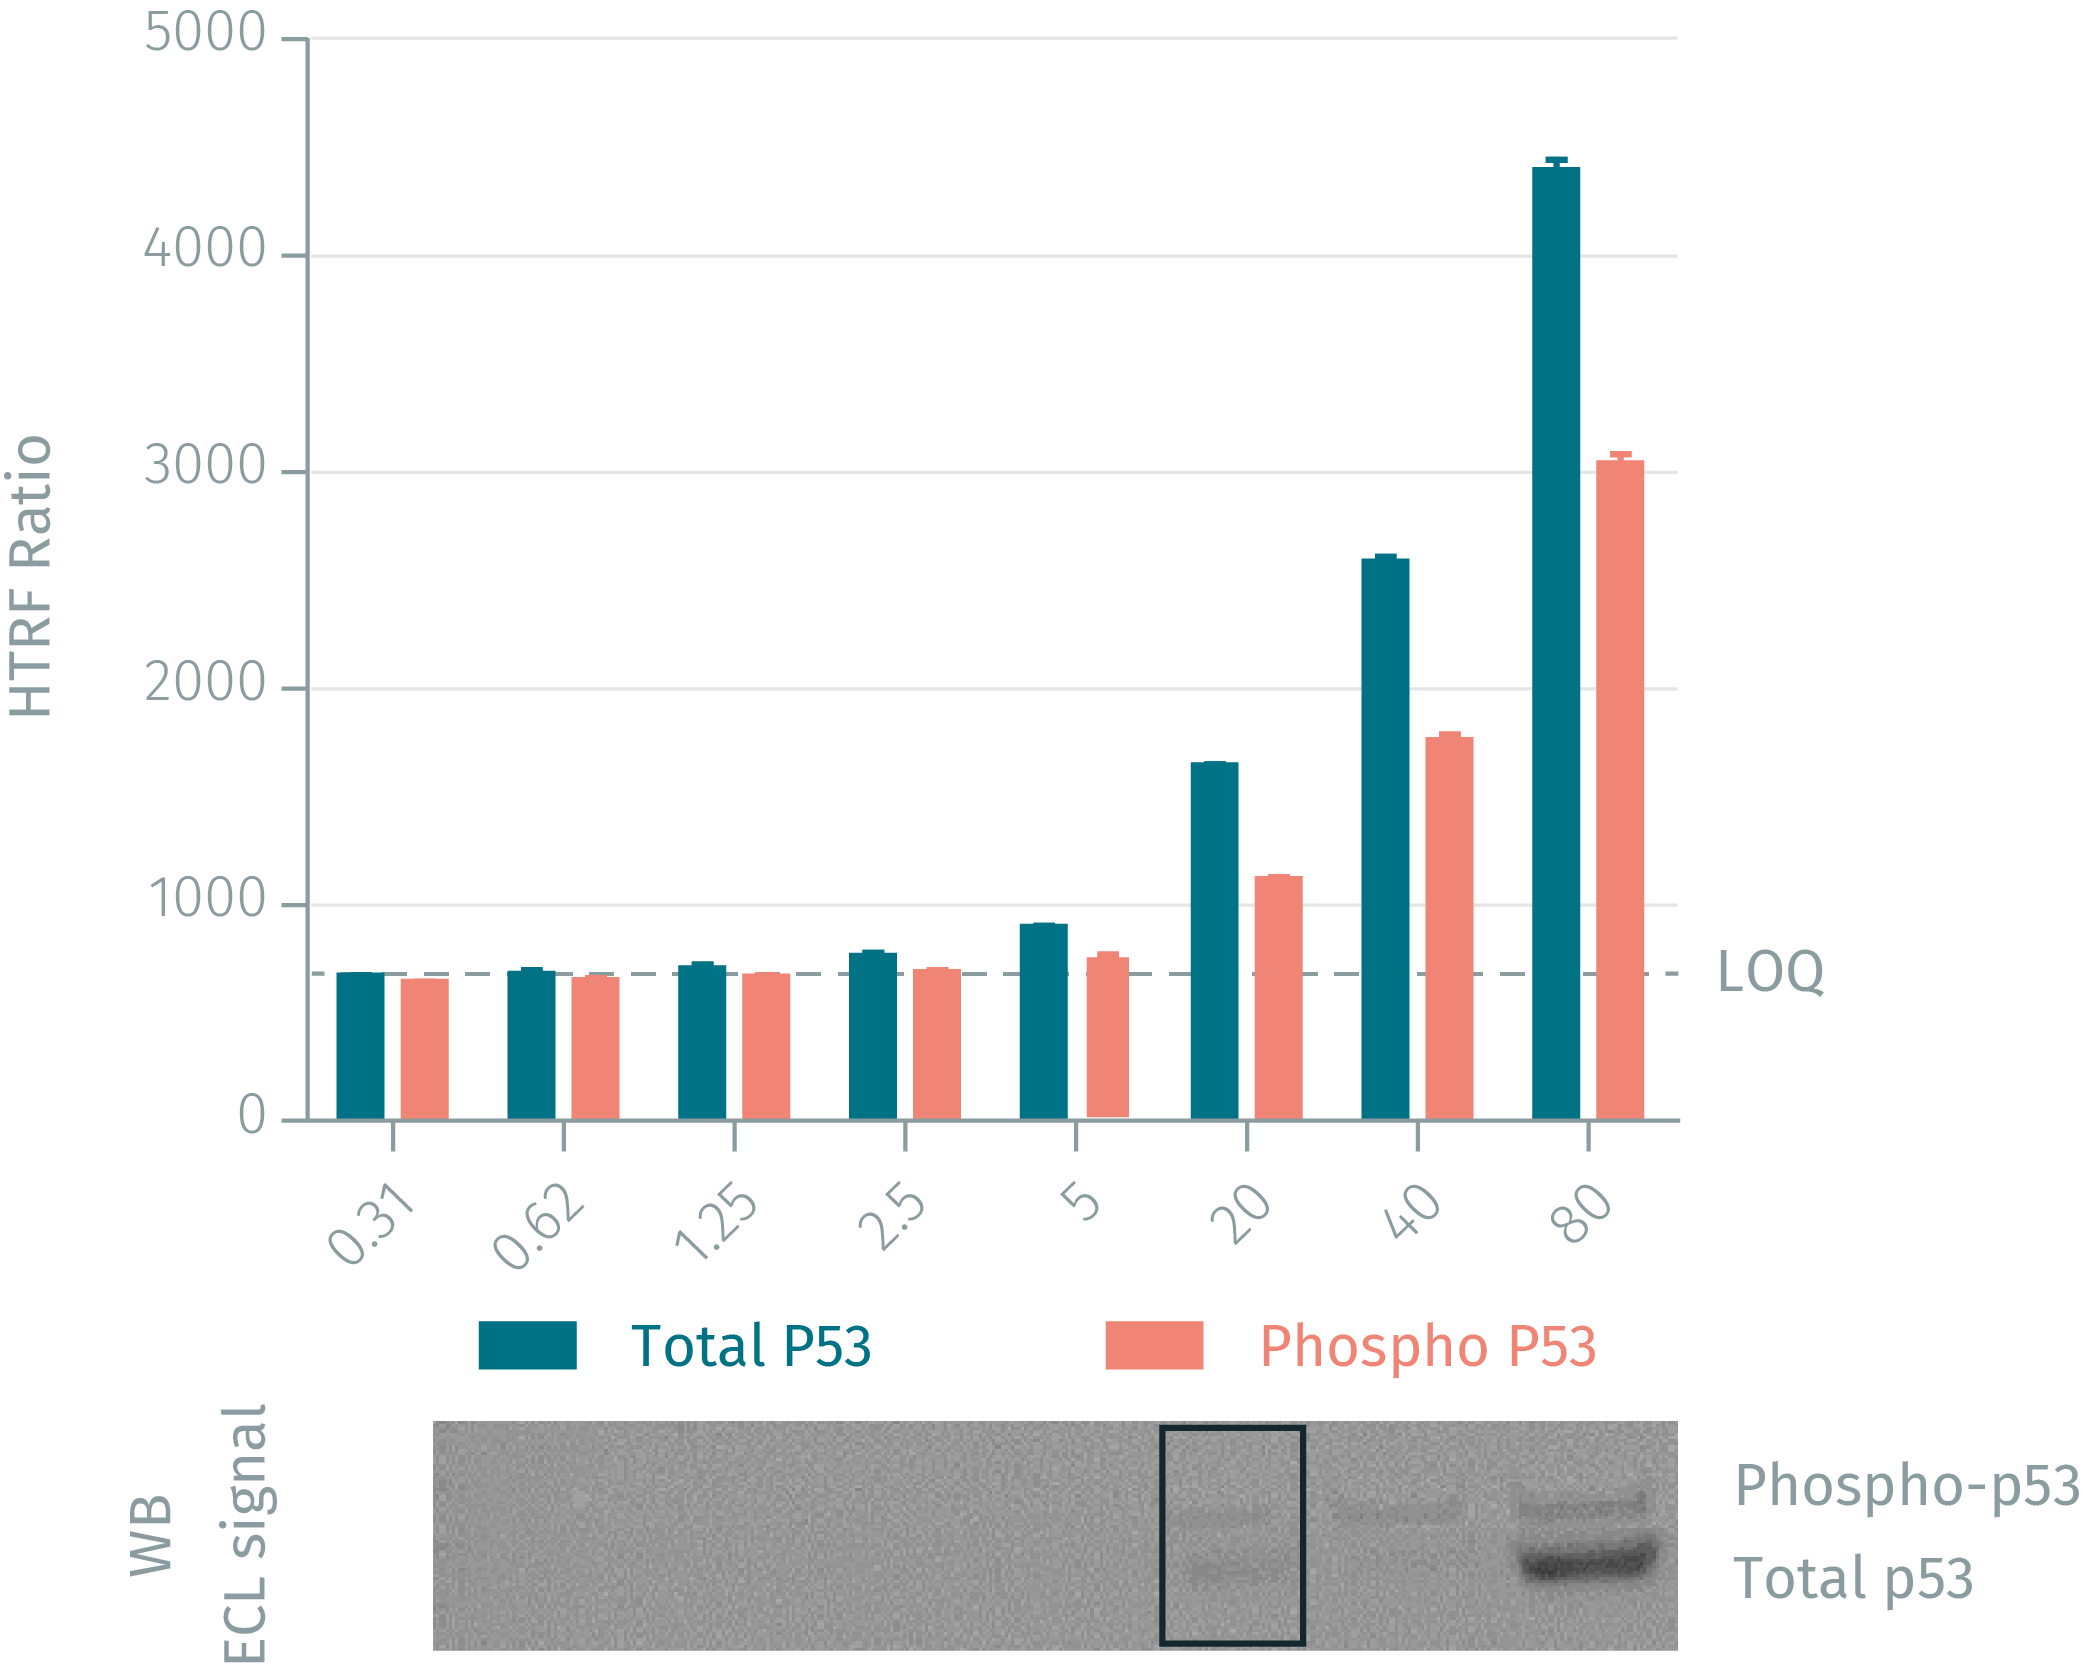 HTRF assay vs WB using phospho & total P53 assays on human MCF-7 cells